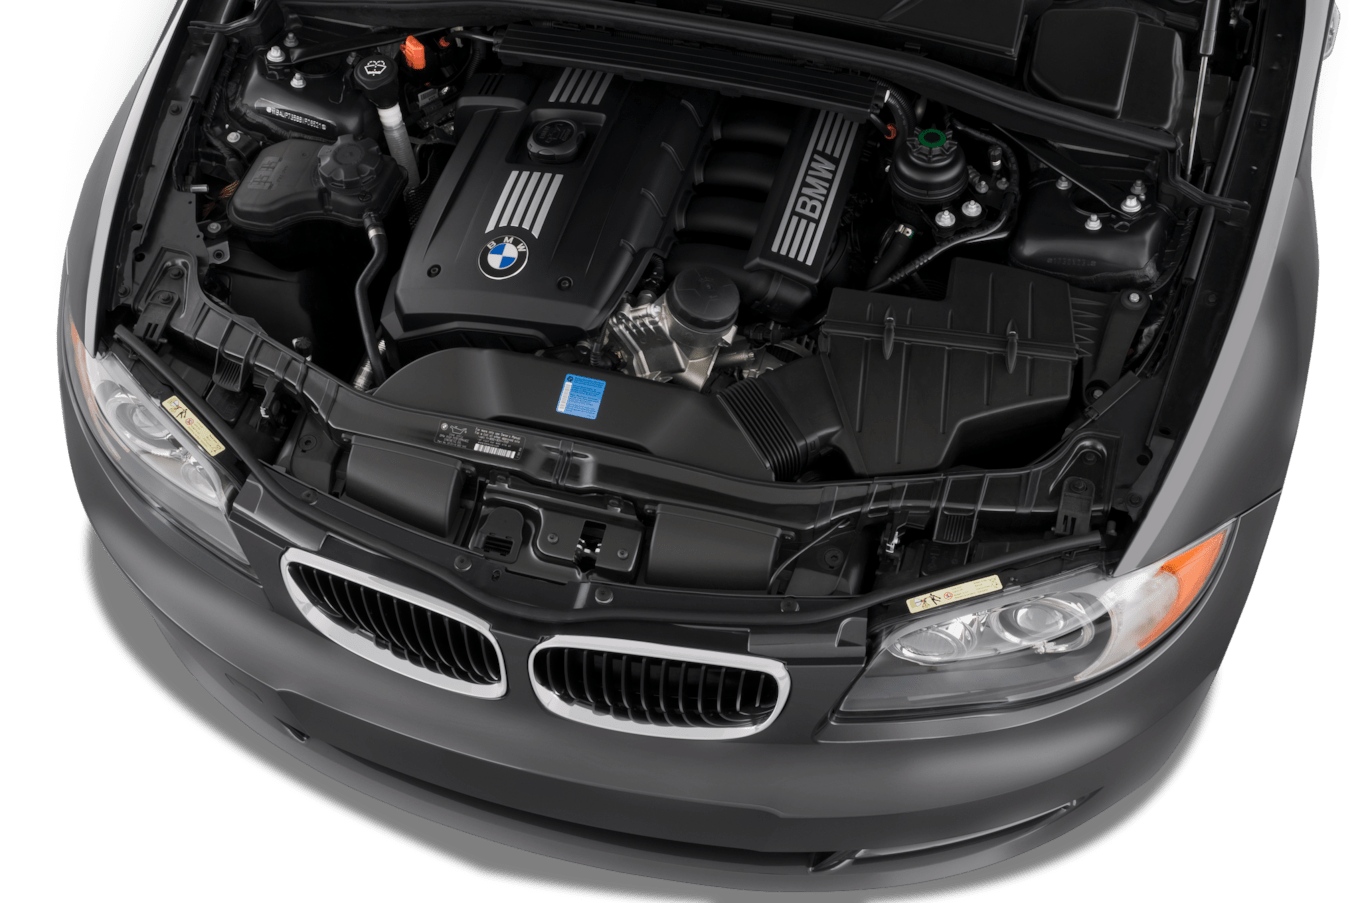 hight resolution of bmw 128i engine diagram wiring diagrams bmw 1 series engine bay diagram 2011 bmw 1 series